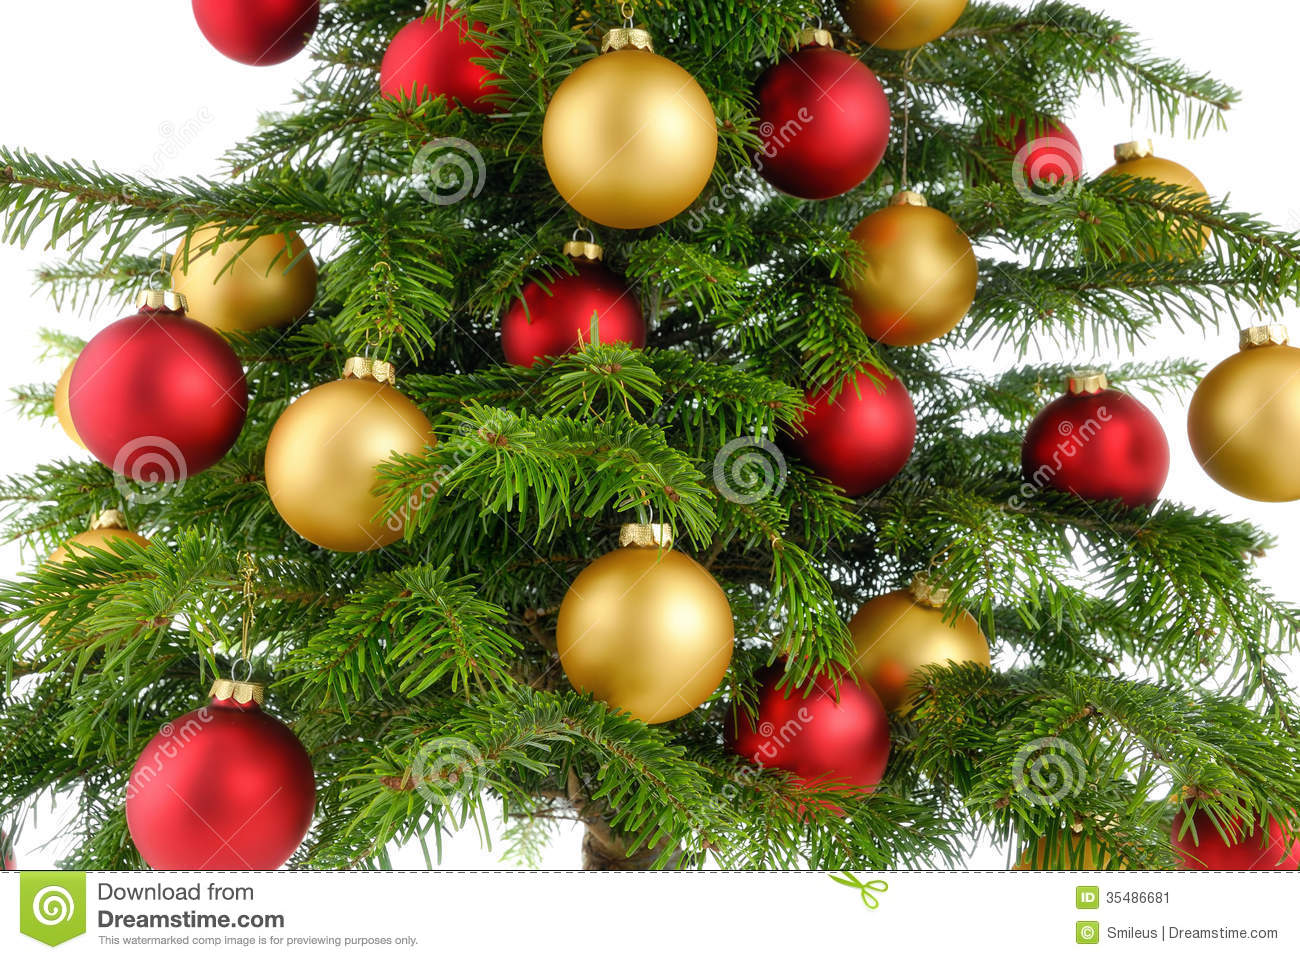 Christmas tree decor red and gold - Christmas Gold Red Studio Tree